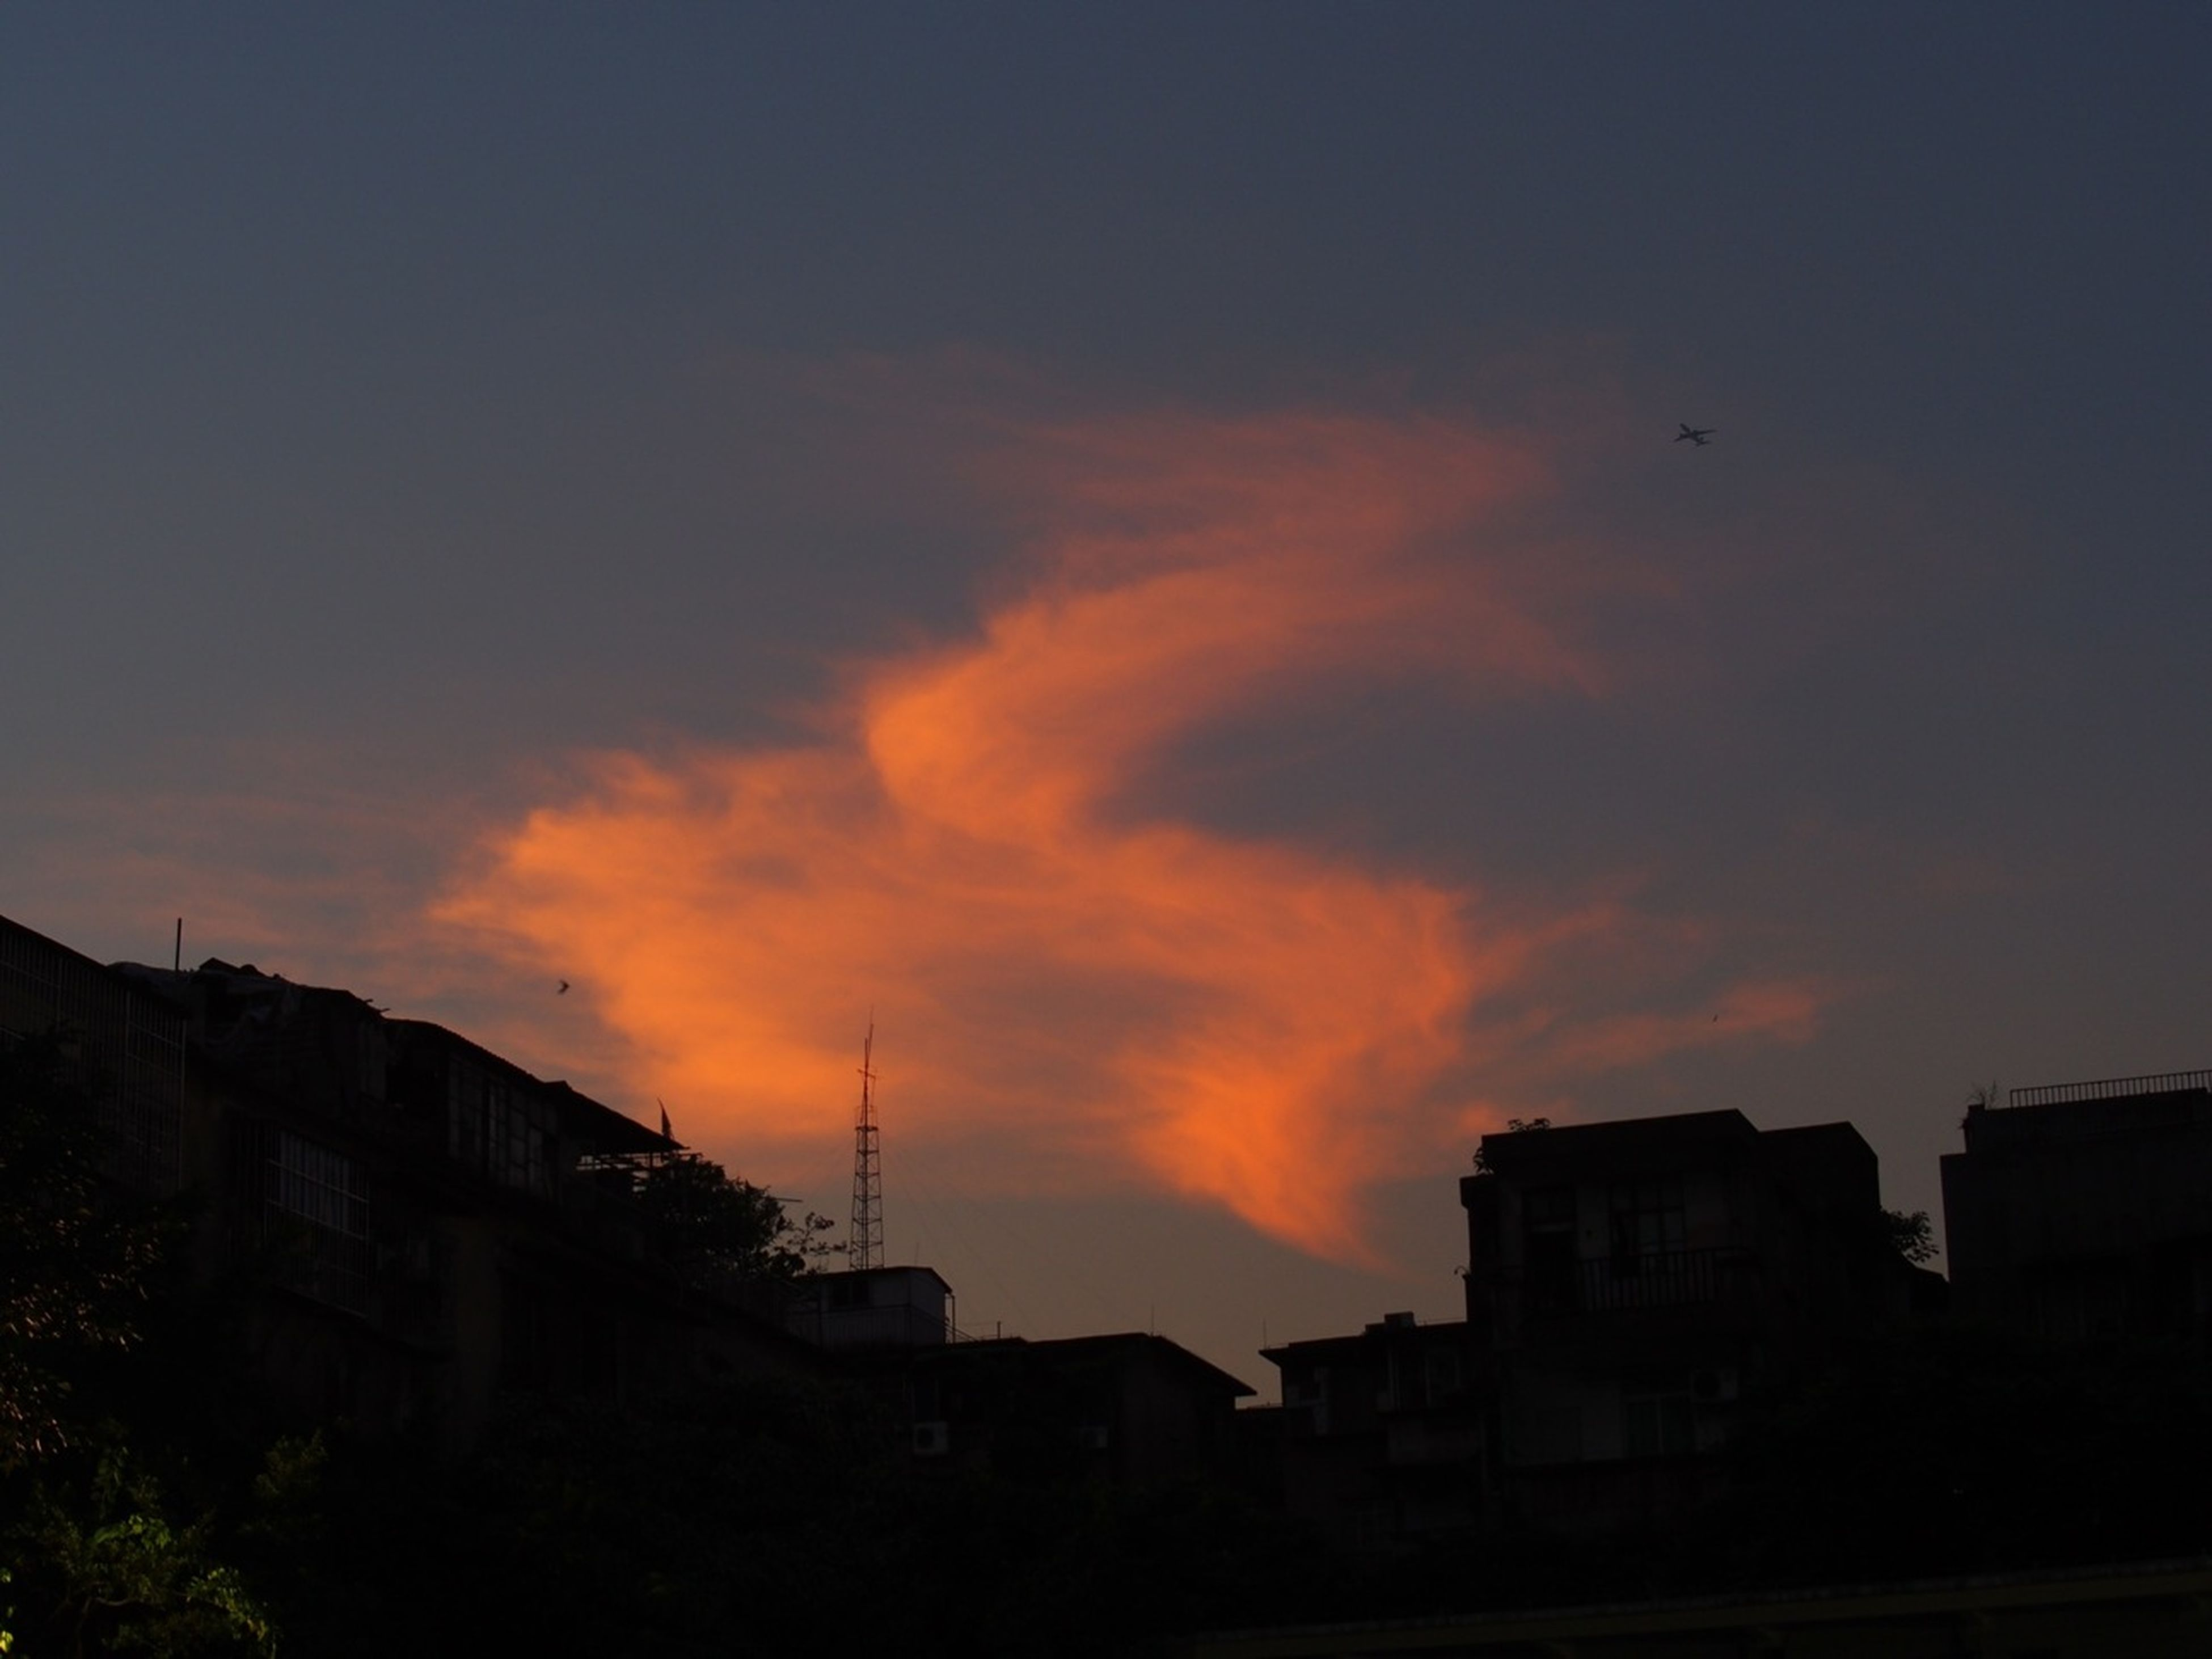 sunset, building exterior, architecture, built structure, silhouette, sky, orange color, cloud - sky, house, residential structure, residential building, low angle view, beauty in nature, building, city, cloud, dramatic sky, outdoors, nature, scenics